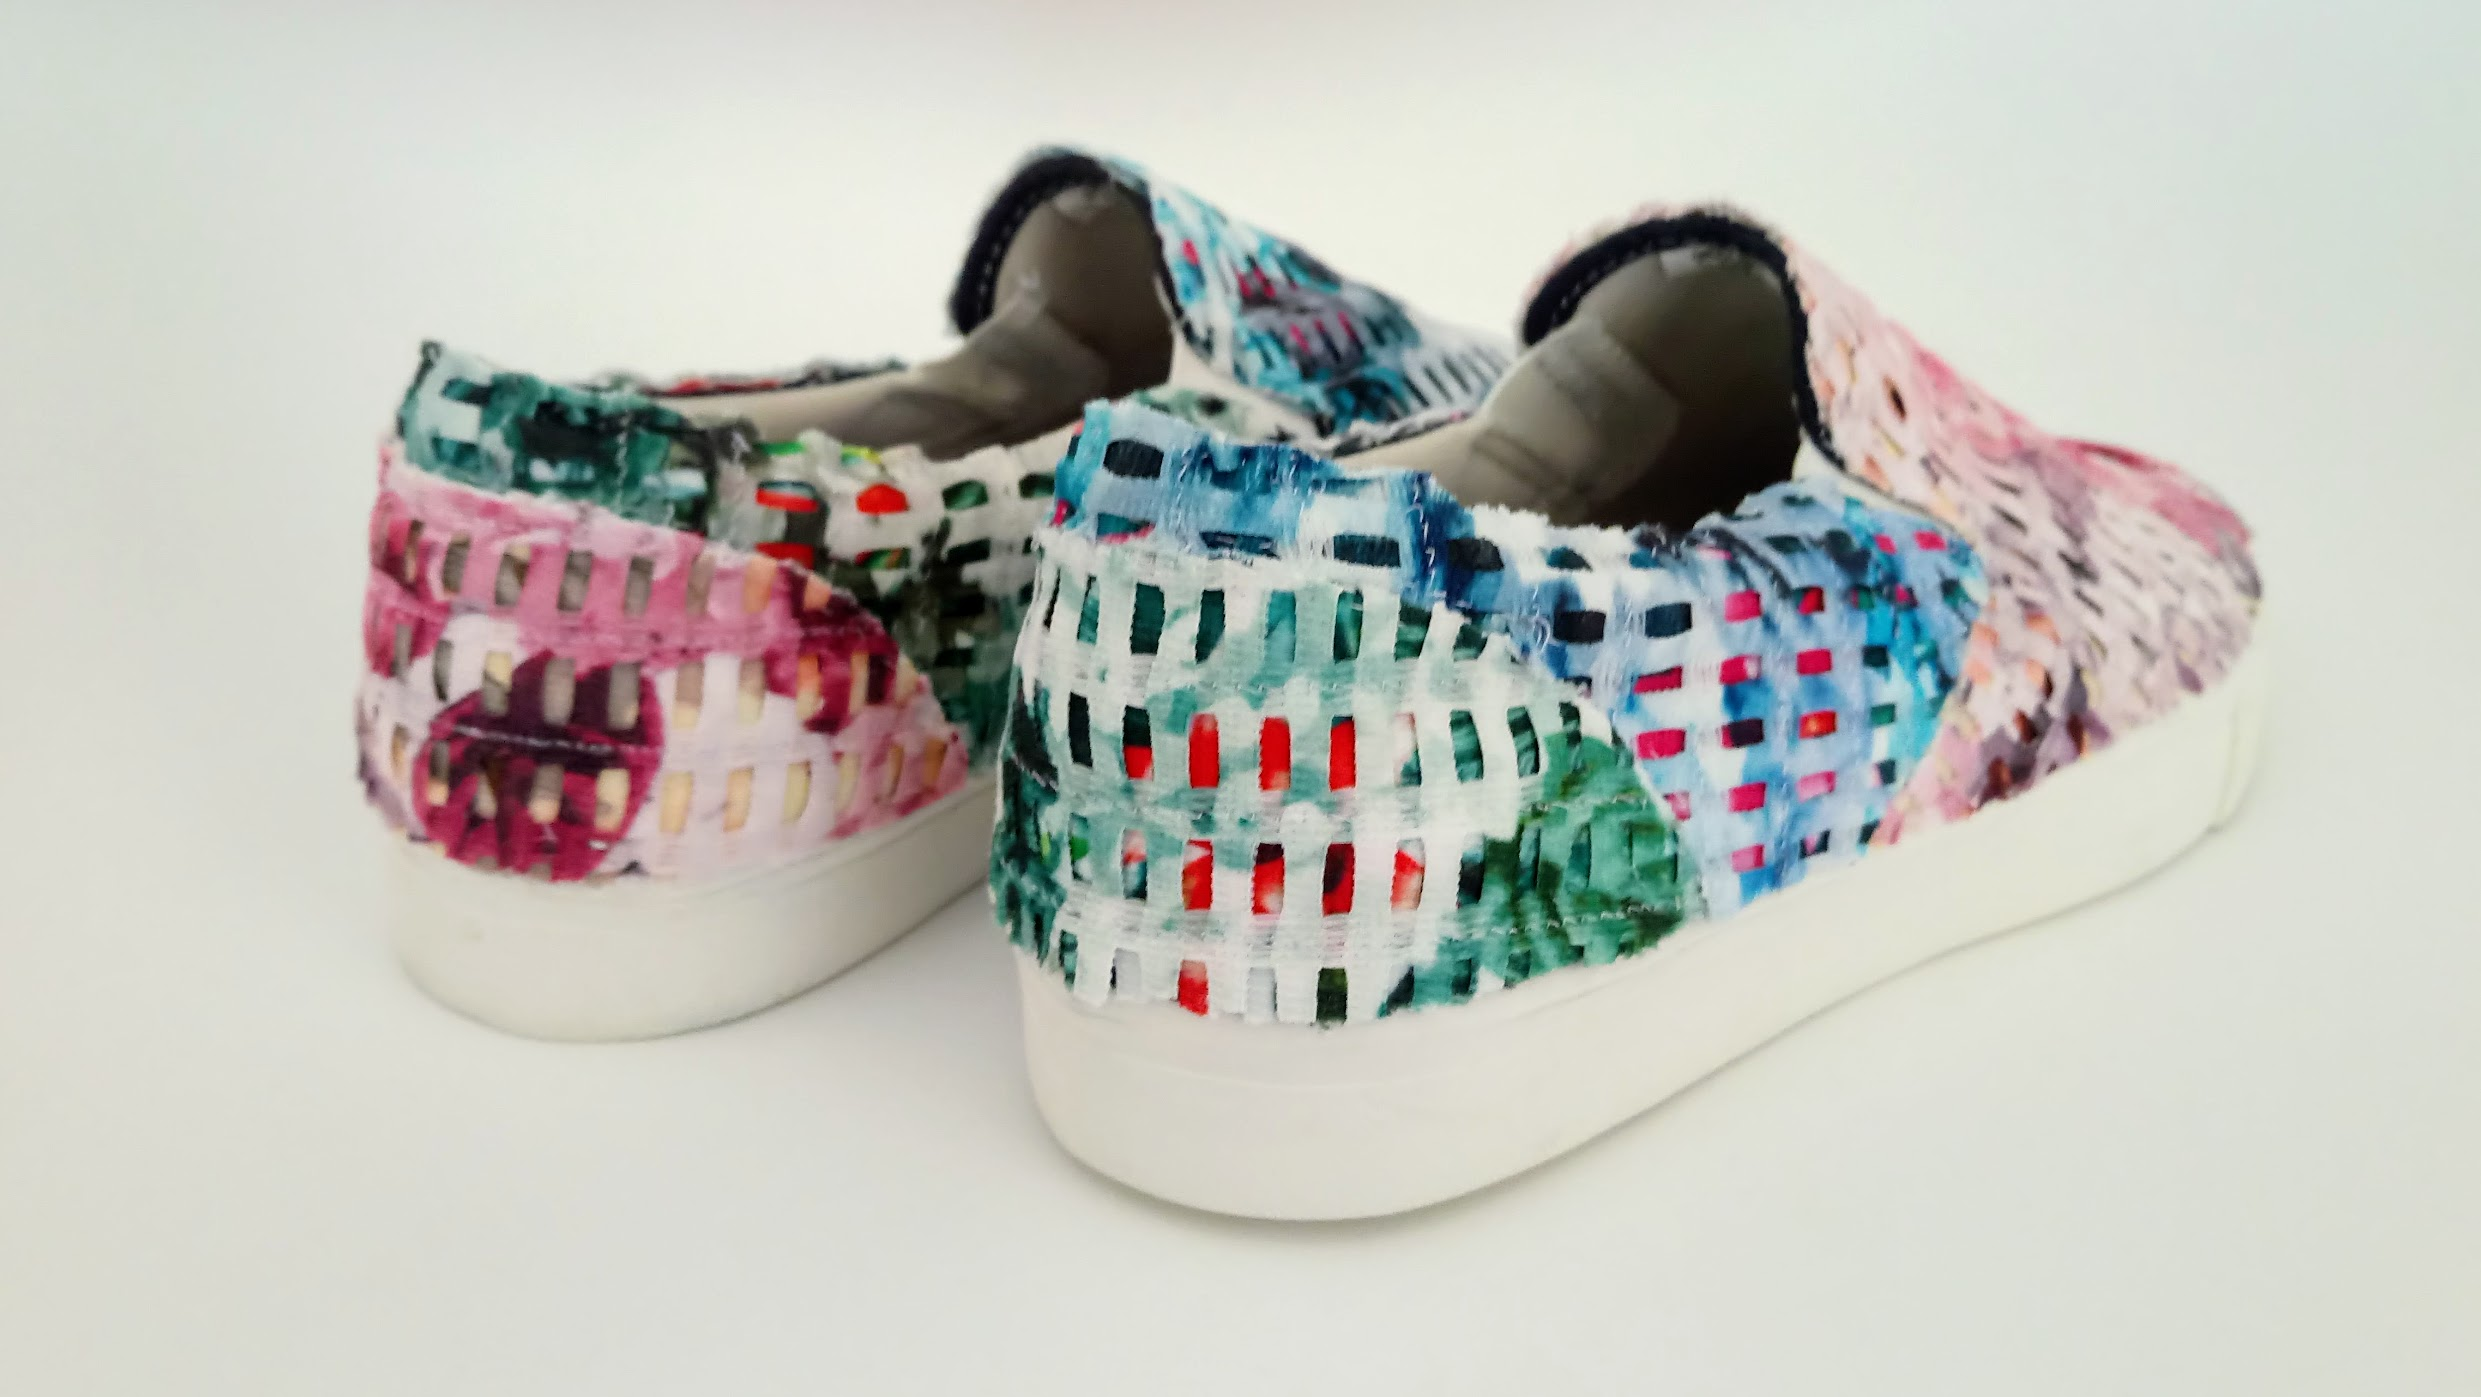 Fabric Collage Shoes - DIY Fashion project   fafafoom.com